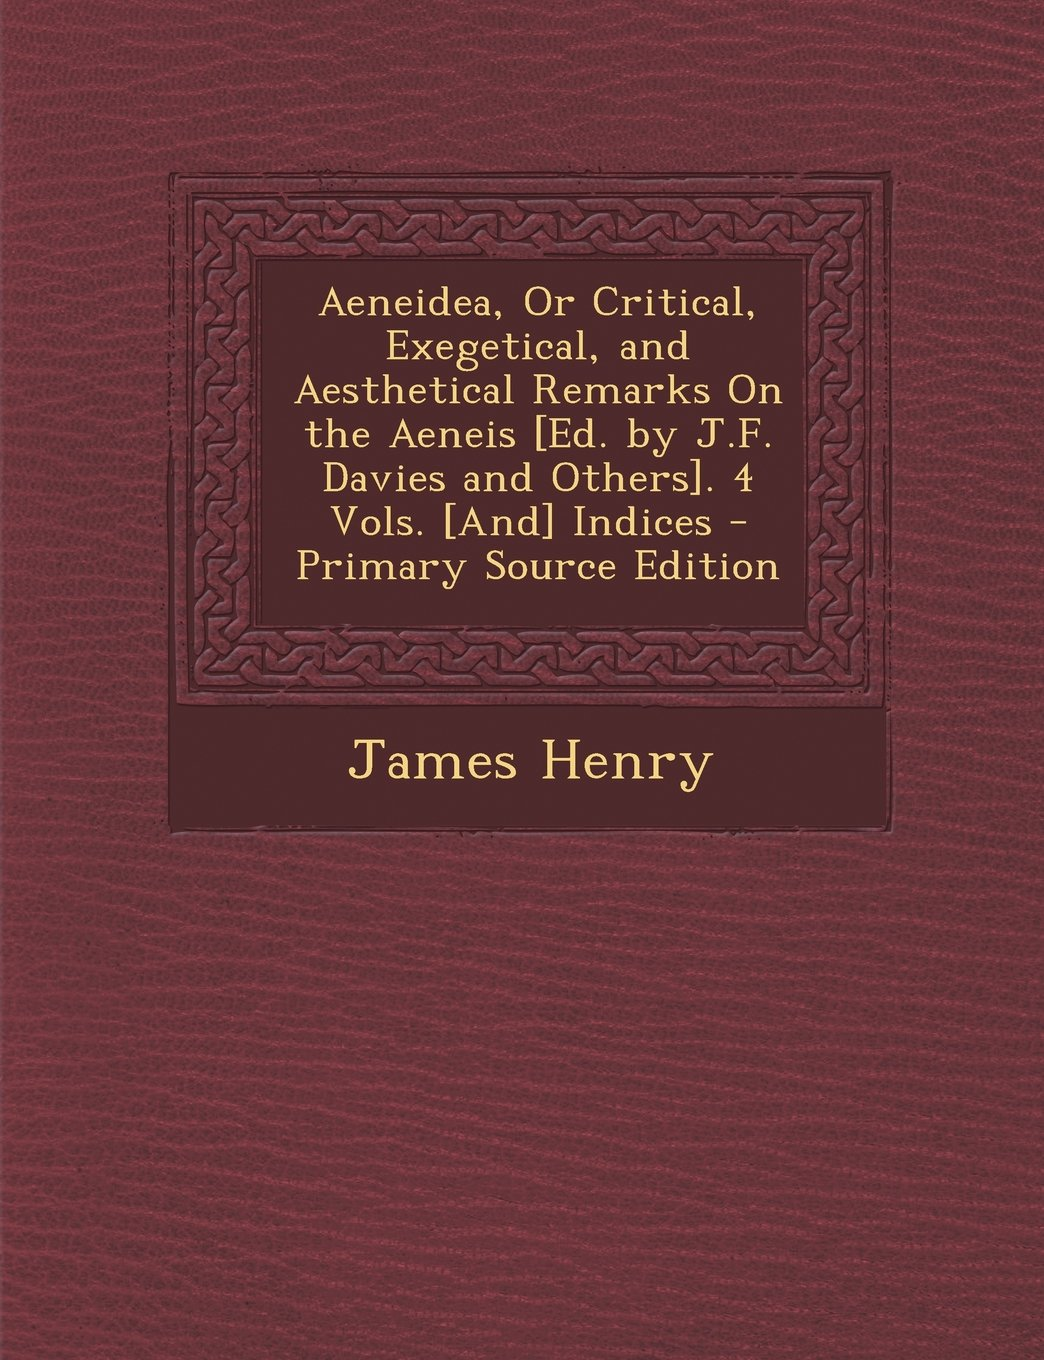 Download Aeneidea, or Critical, Exegetical, and Aesthetical Remarks on the Aeneis [Ed. by J.F. Davies and Others]. 4 Vols. [And] Indices - Primary Source Editi pdf epub